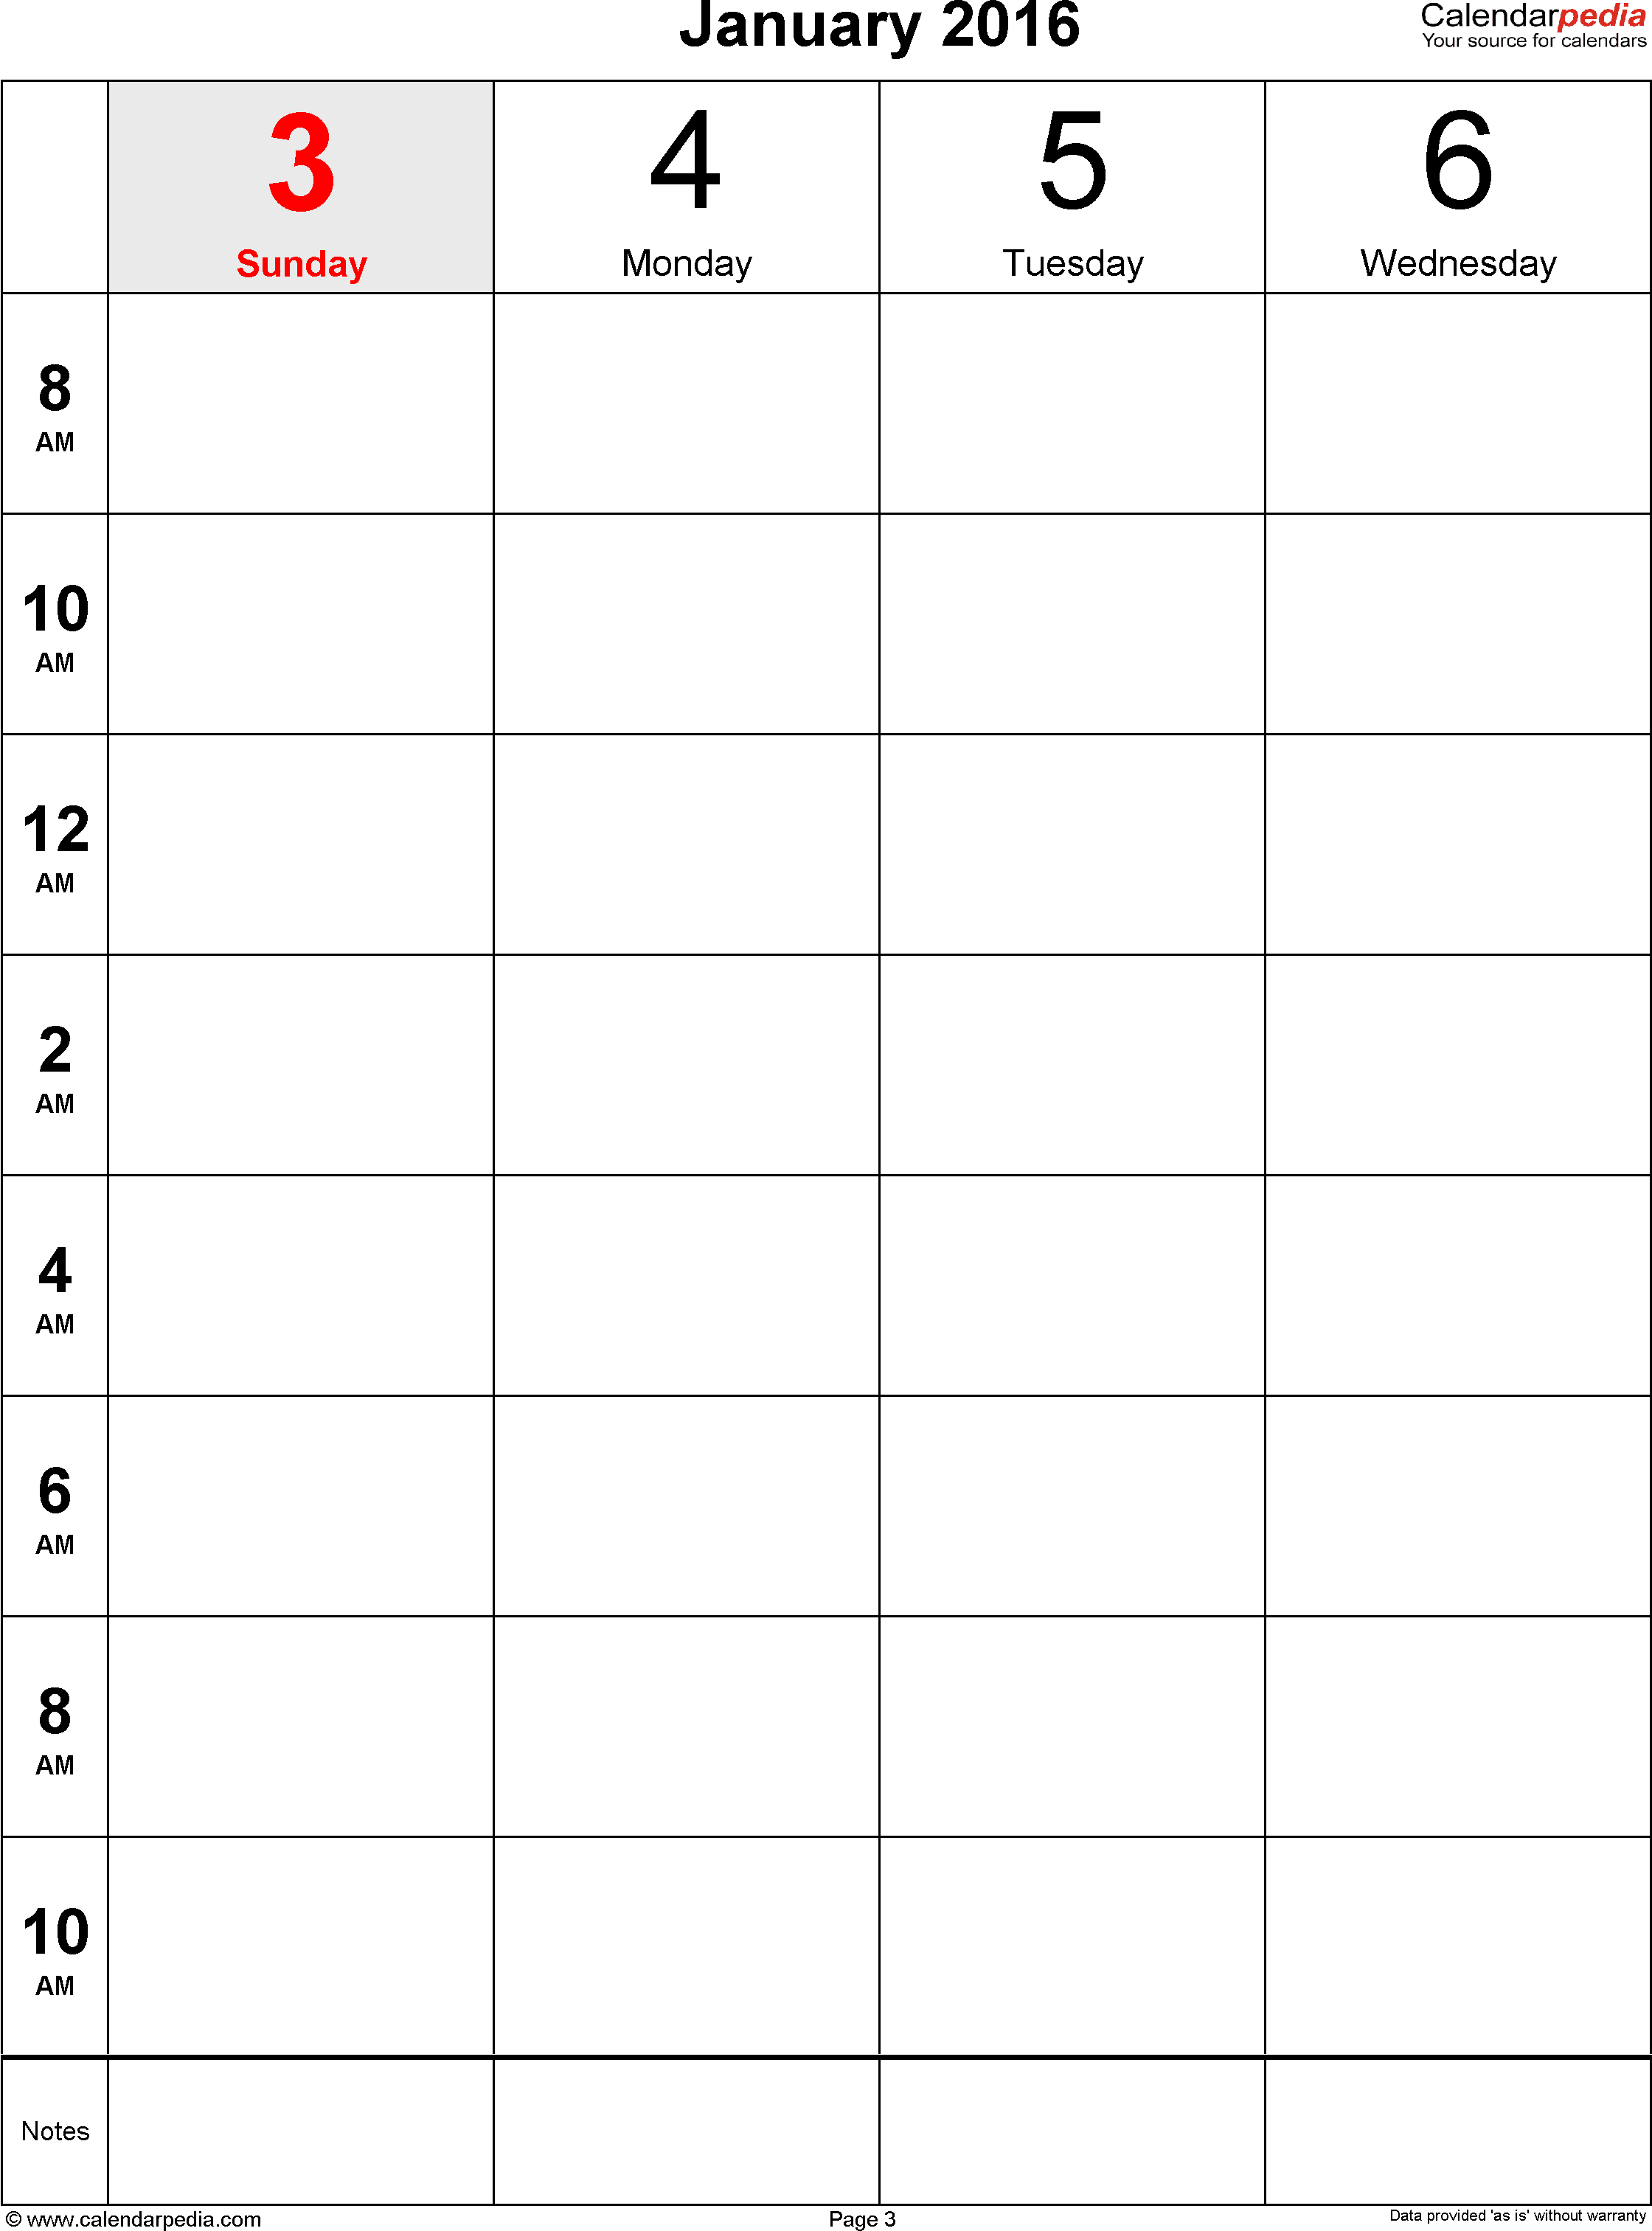 Weekly calendar 2016: template for Excel version 12, portrait, 106 pages, 2 pages to a week (8 blocks of 2 hours per day, 8am to 11:59pm)